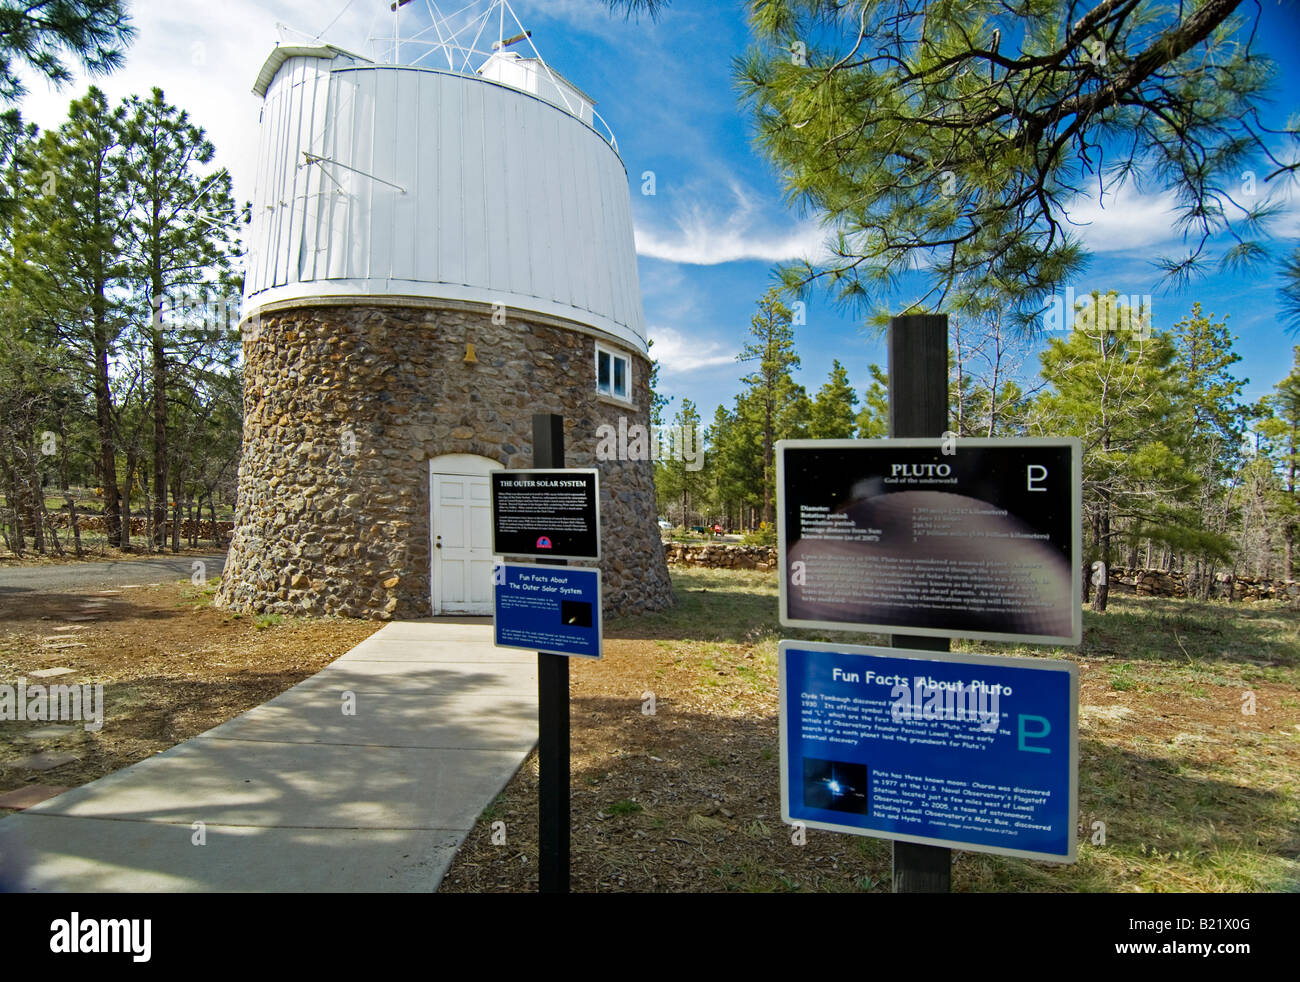 The Pluto Dome at the Lowell Observatory where Clyde Tombaugh discovered Pluto. - Stock Image